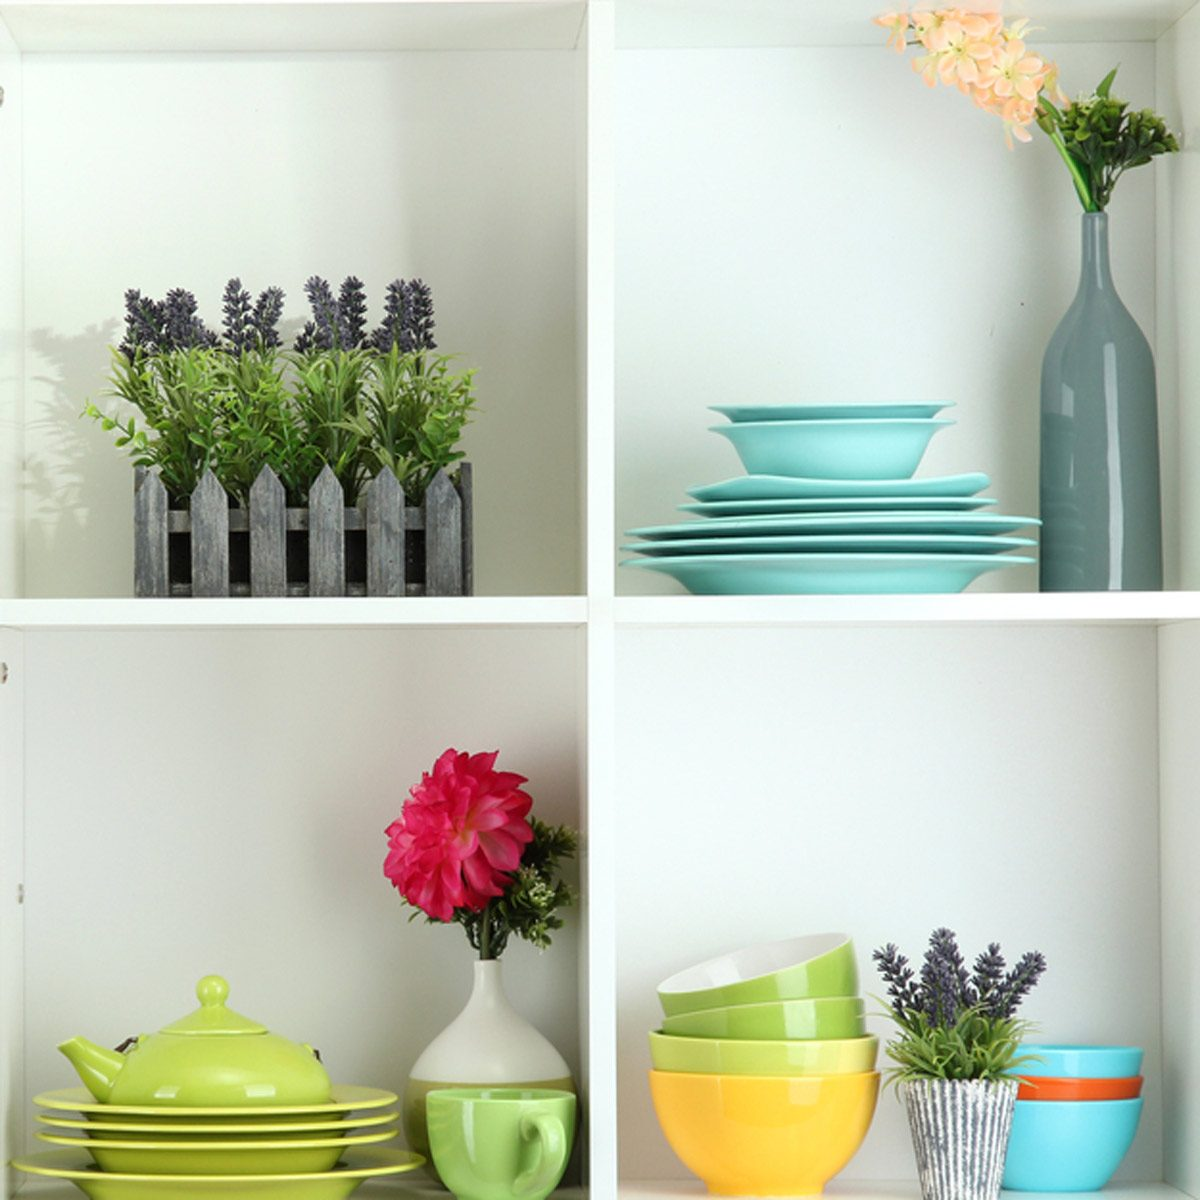 shutterstock_126715268 open shelving kitchen bowls organization